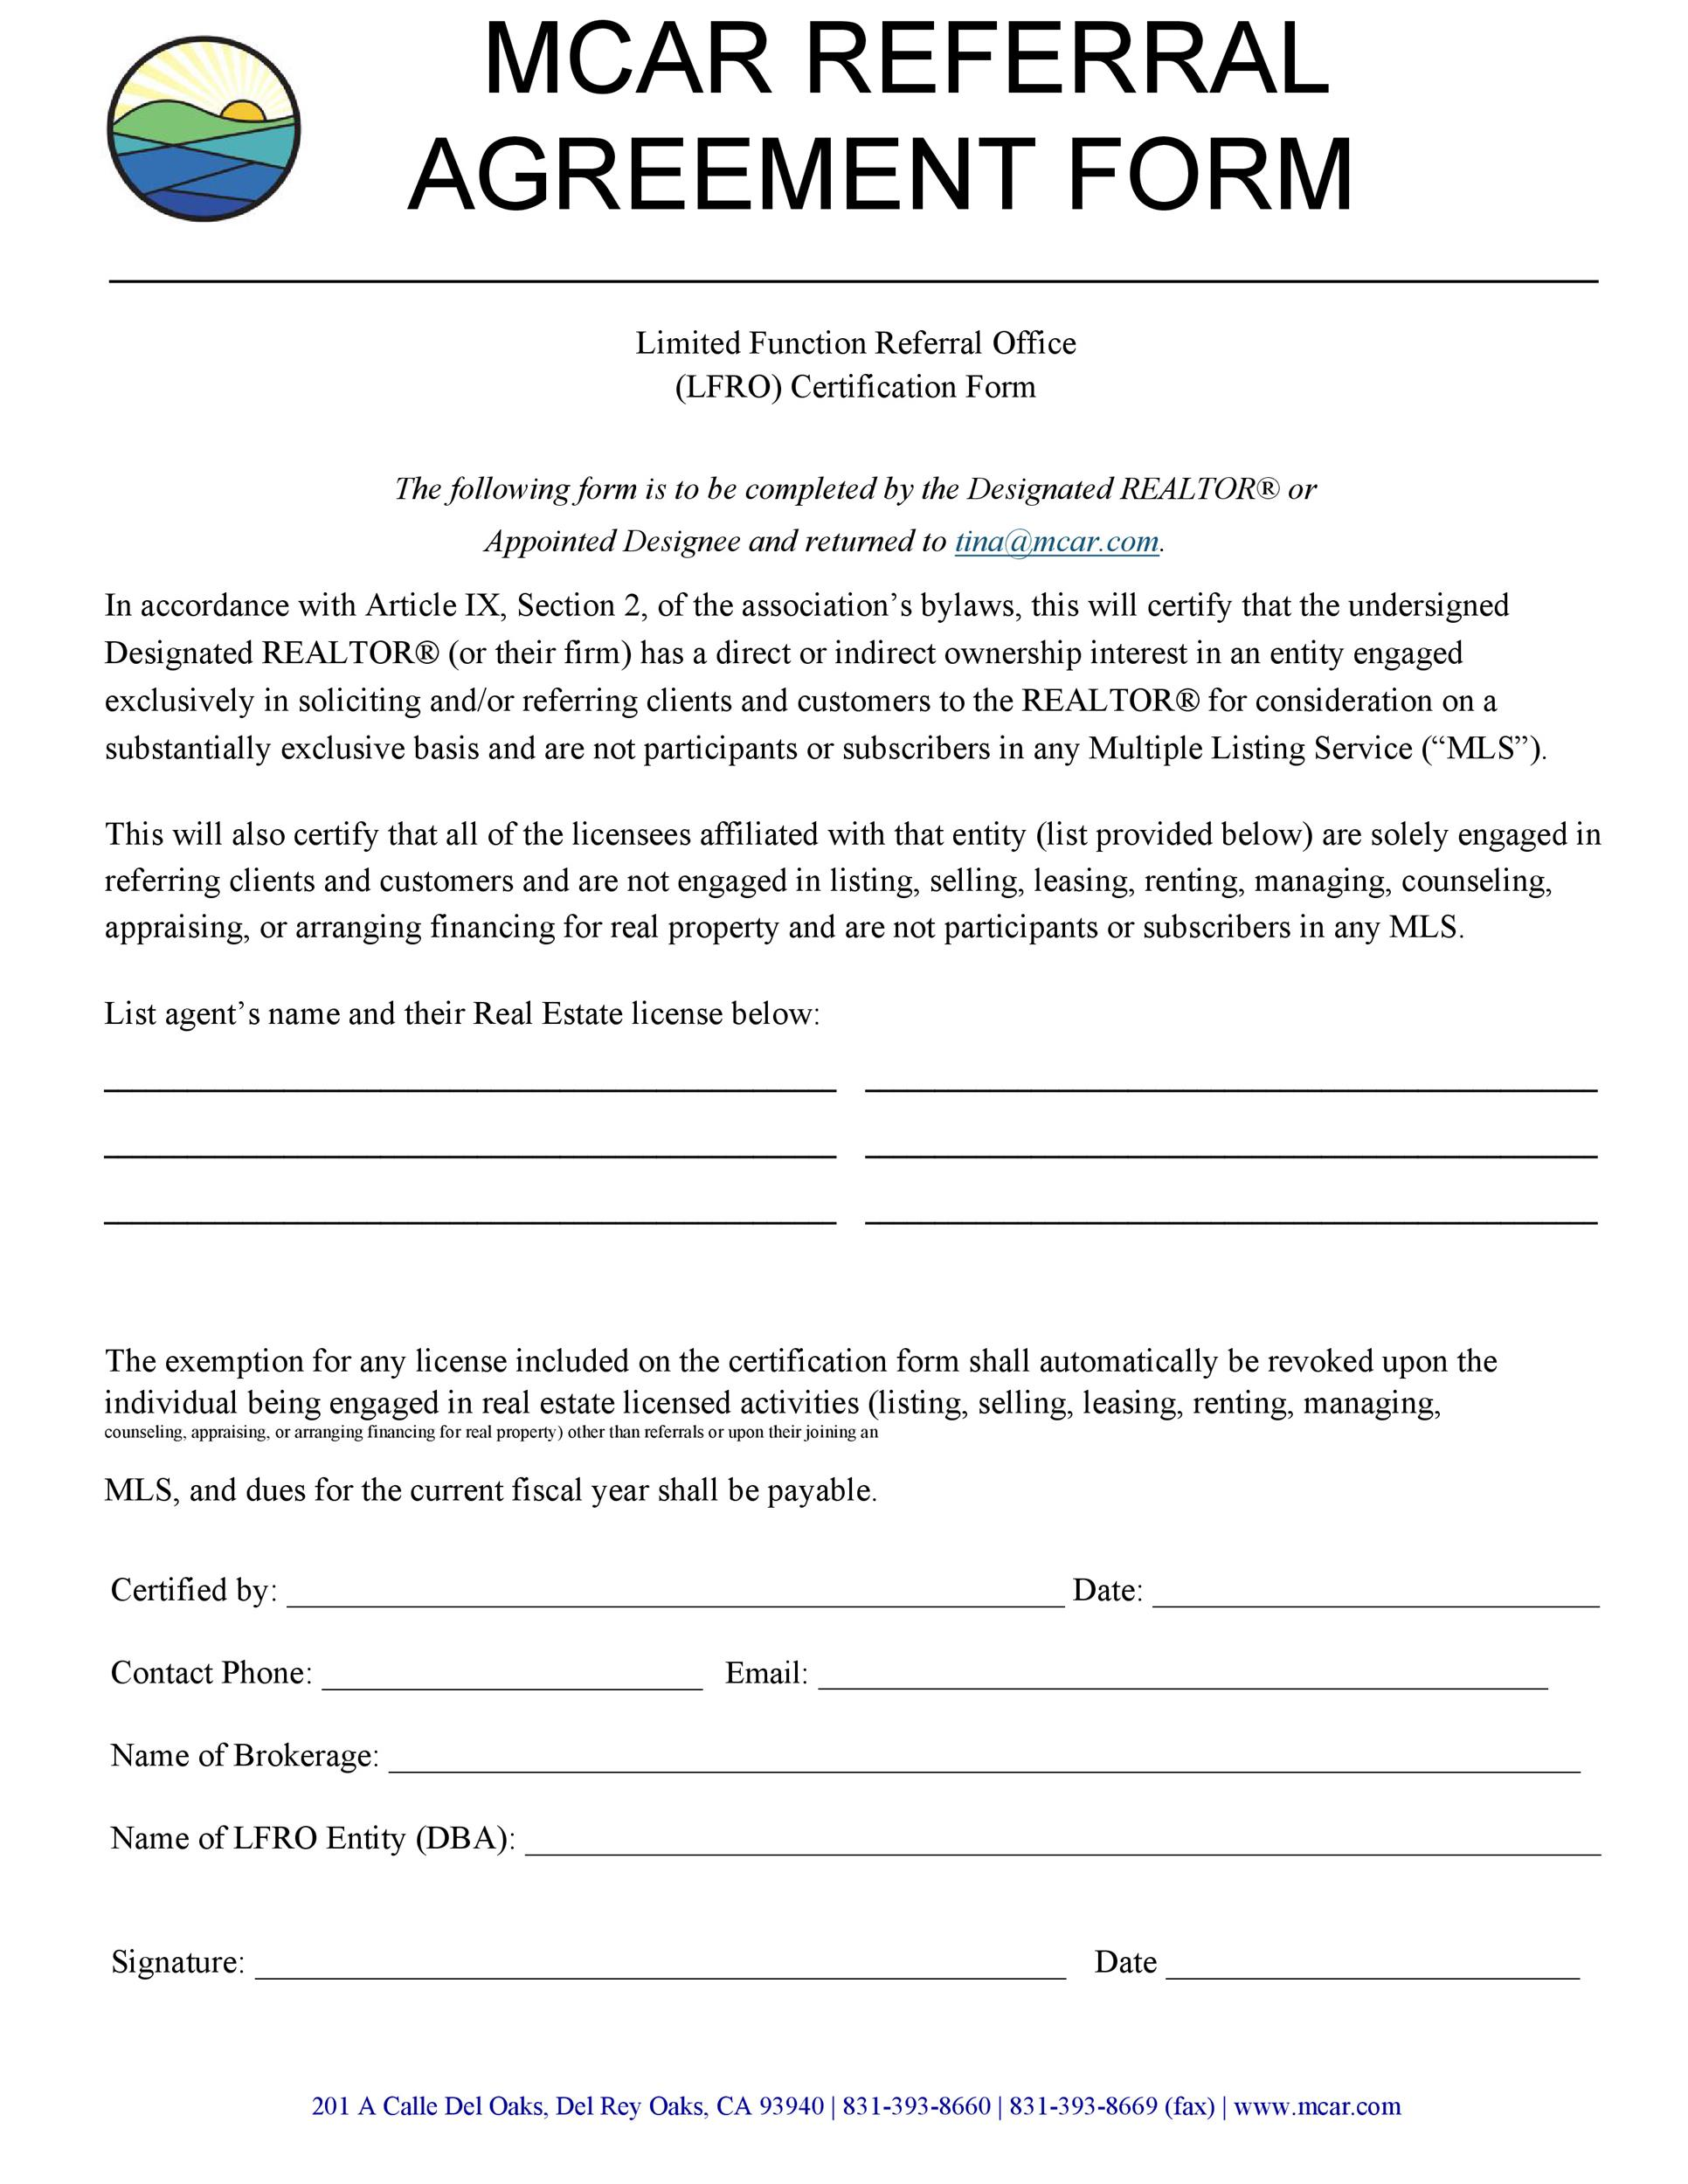 Free referral agreement template 36